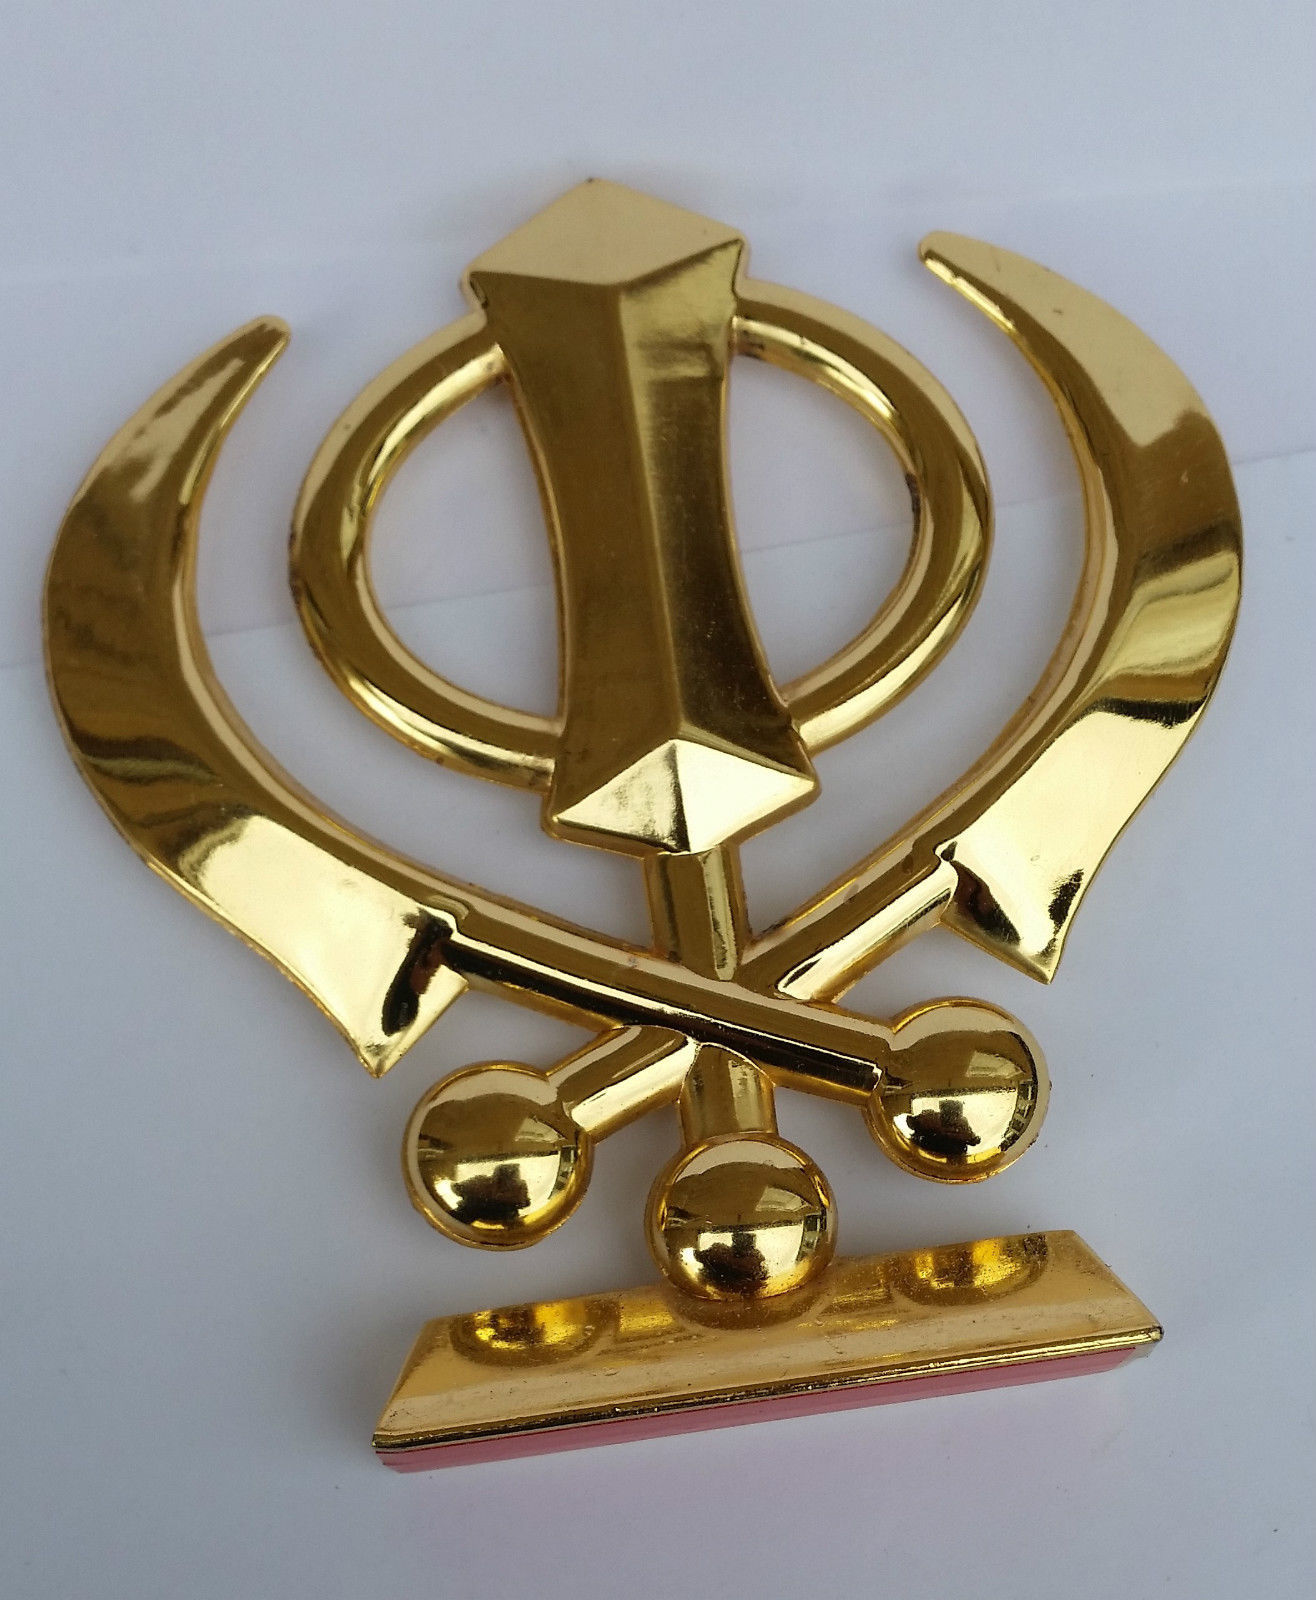 Car Dashboard Mantle Piece 3D Stunning Gold Tone Small Khanda Stand GIFT item